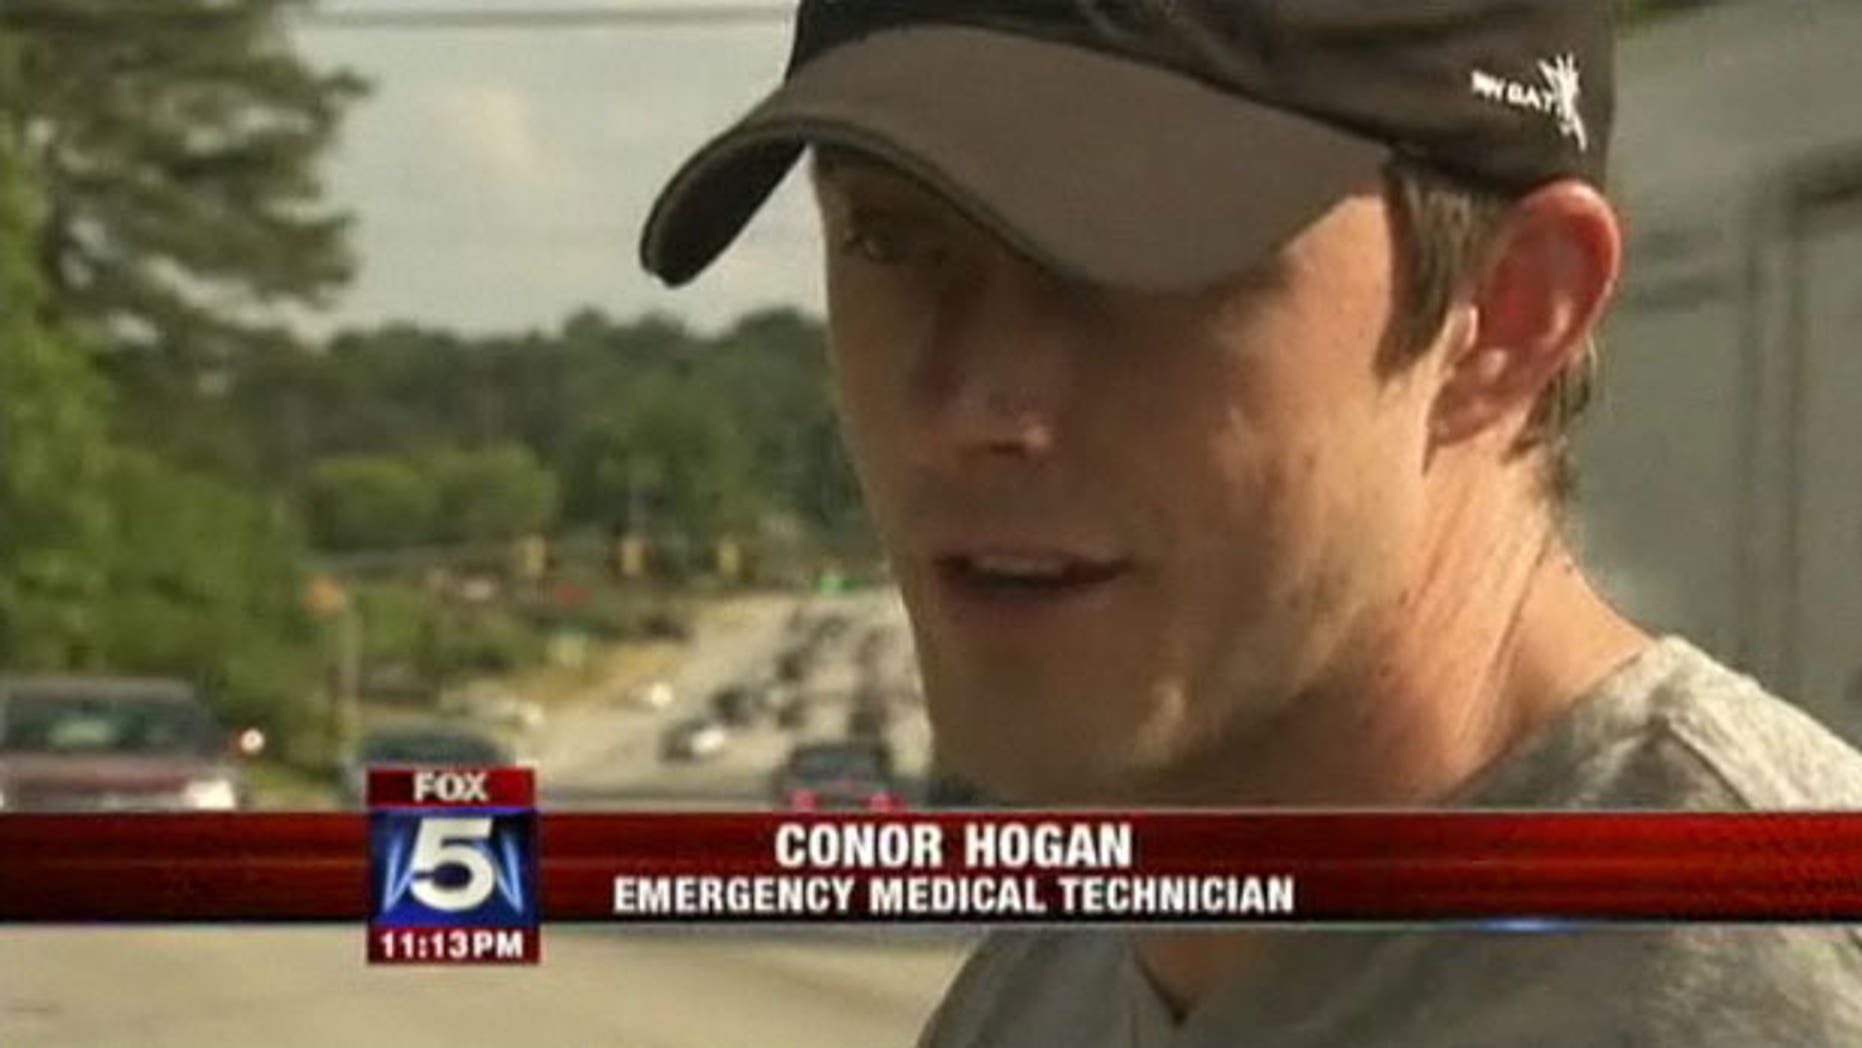 Conor Hogan helped save a runner's life after the woman collapsed on the sidewalk.